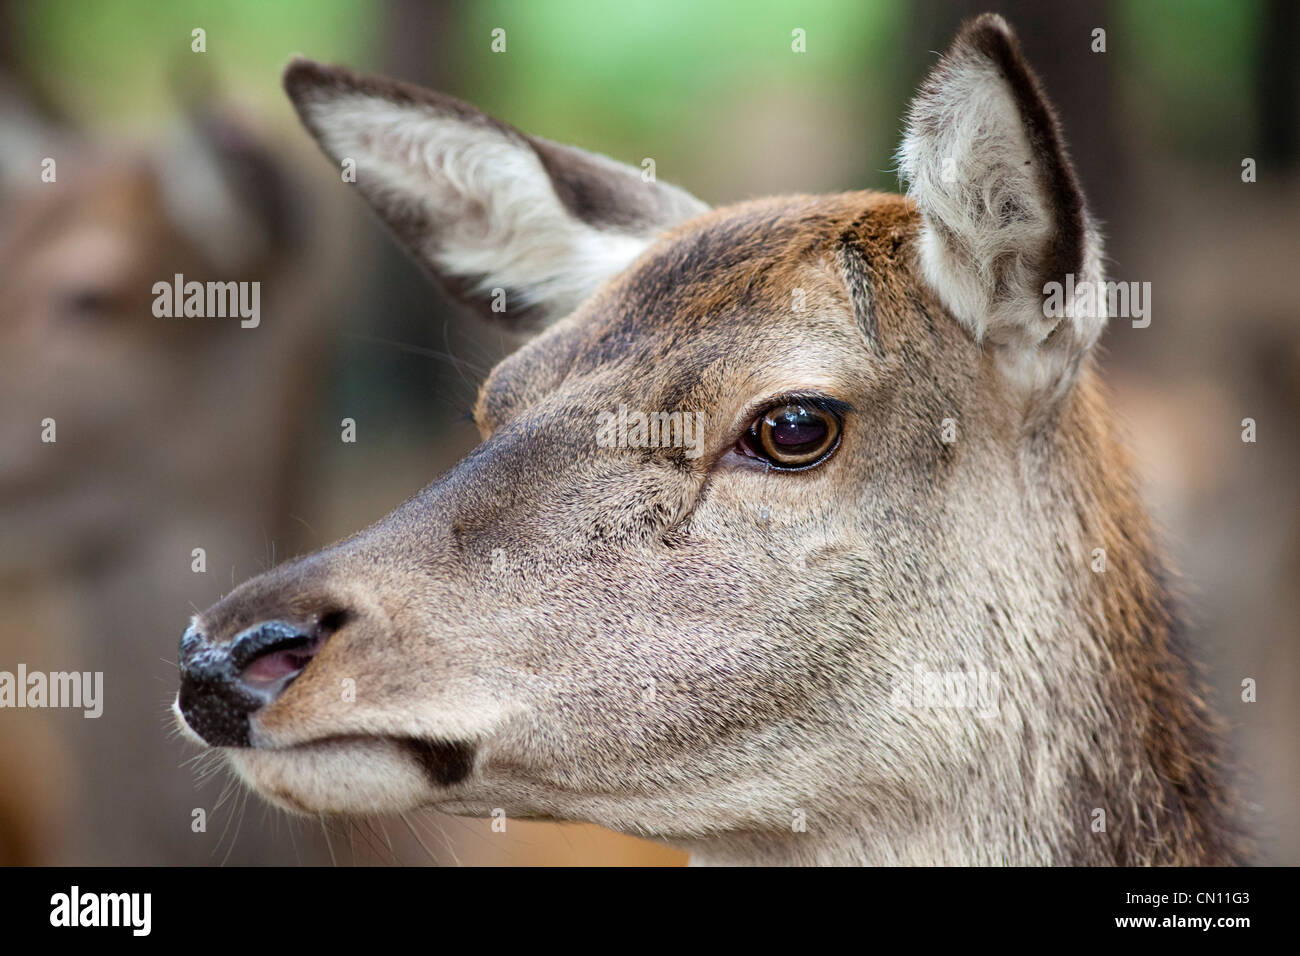 Red deer hind - Cervus elaphus, close up on face and head - Stock Image